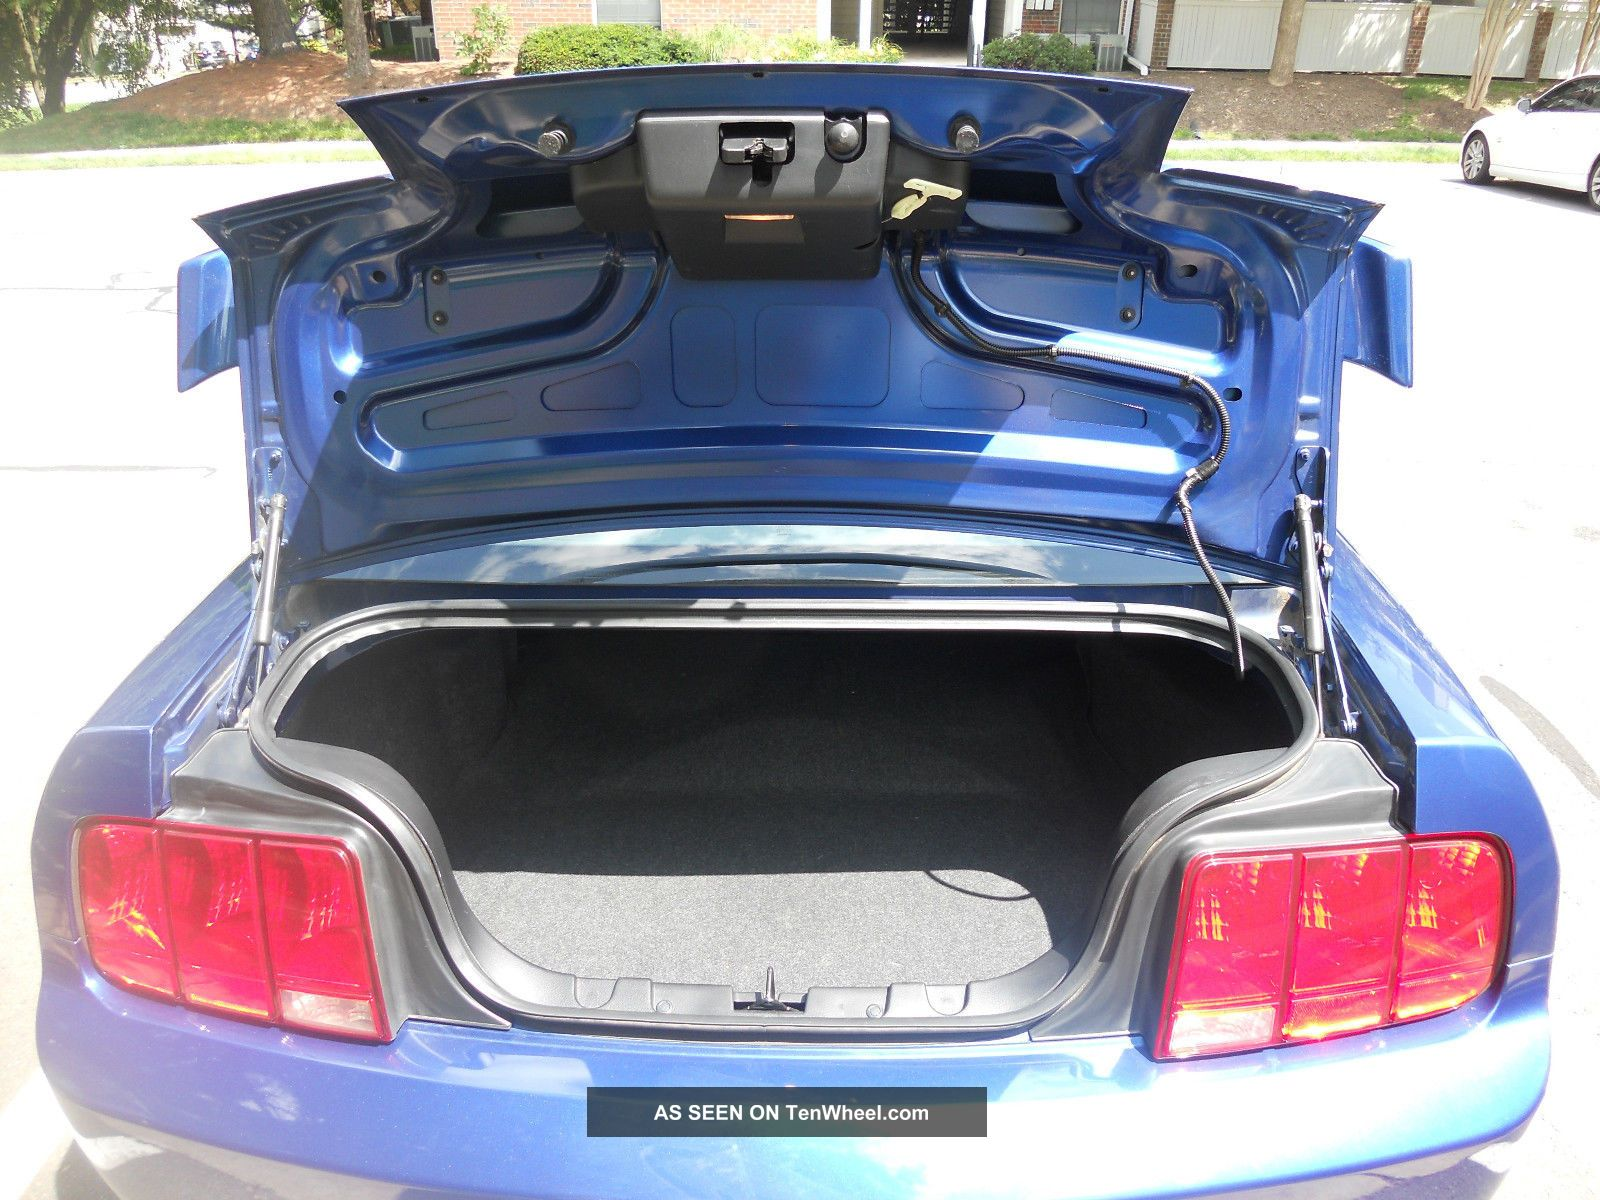 2006 Ford Mustang V8 Premium Gt Coupe, 42k, Lowered, Borla Exhaust